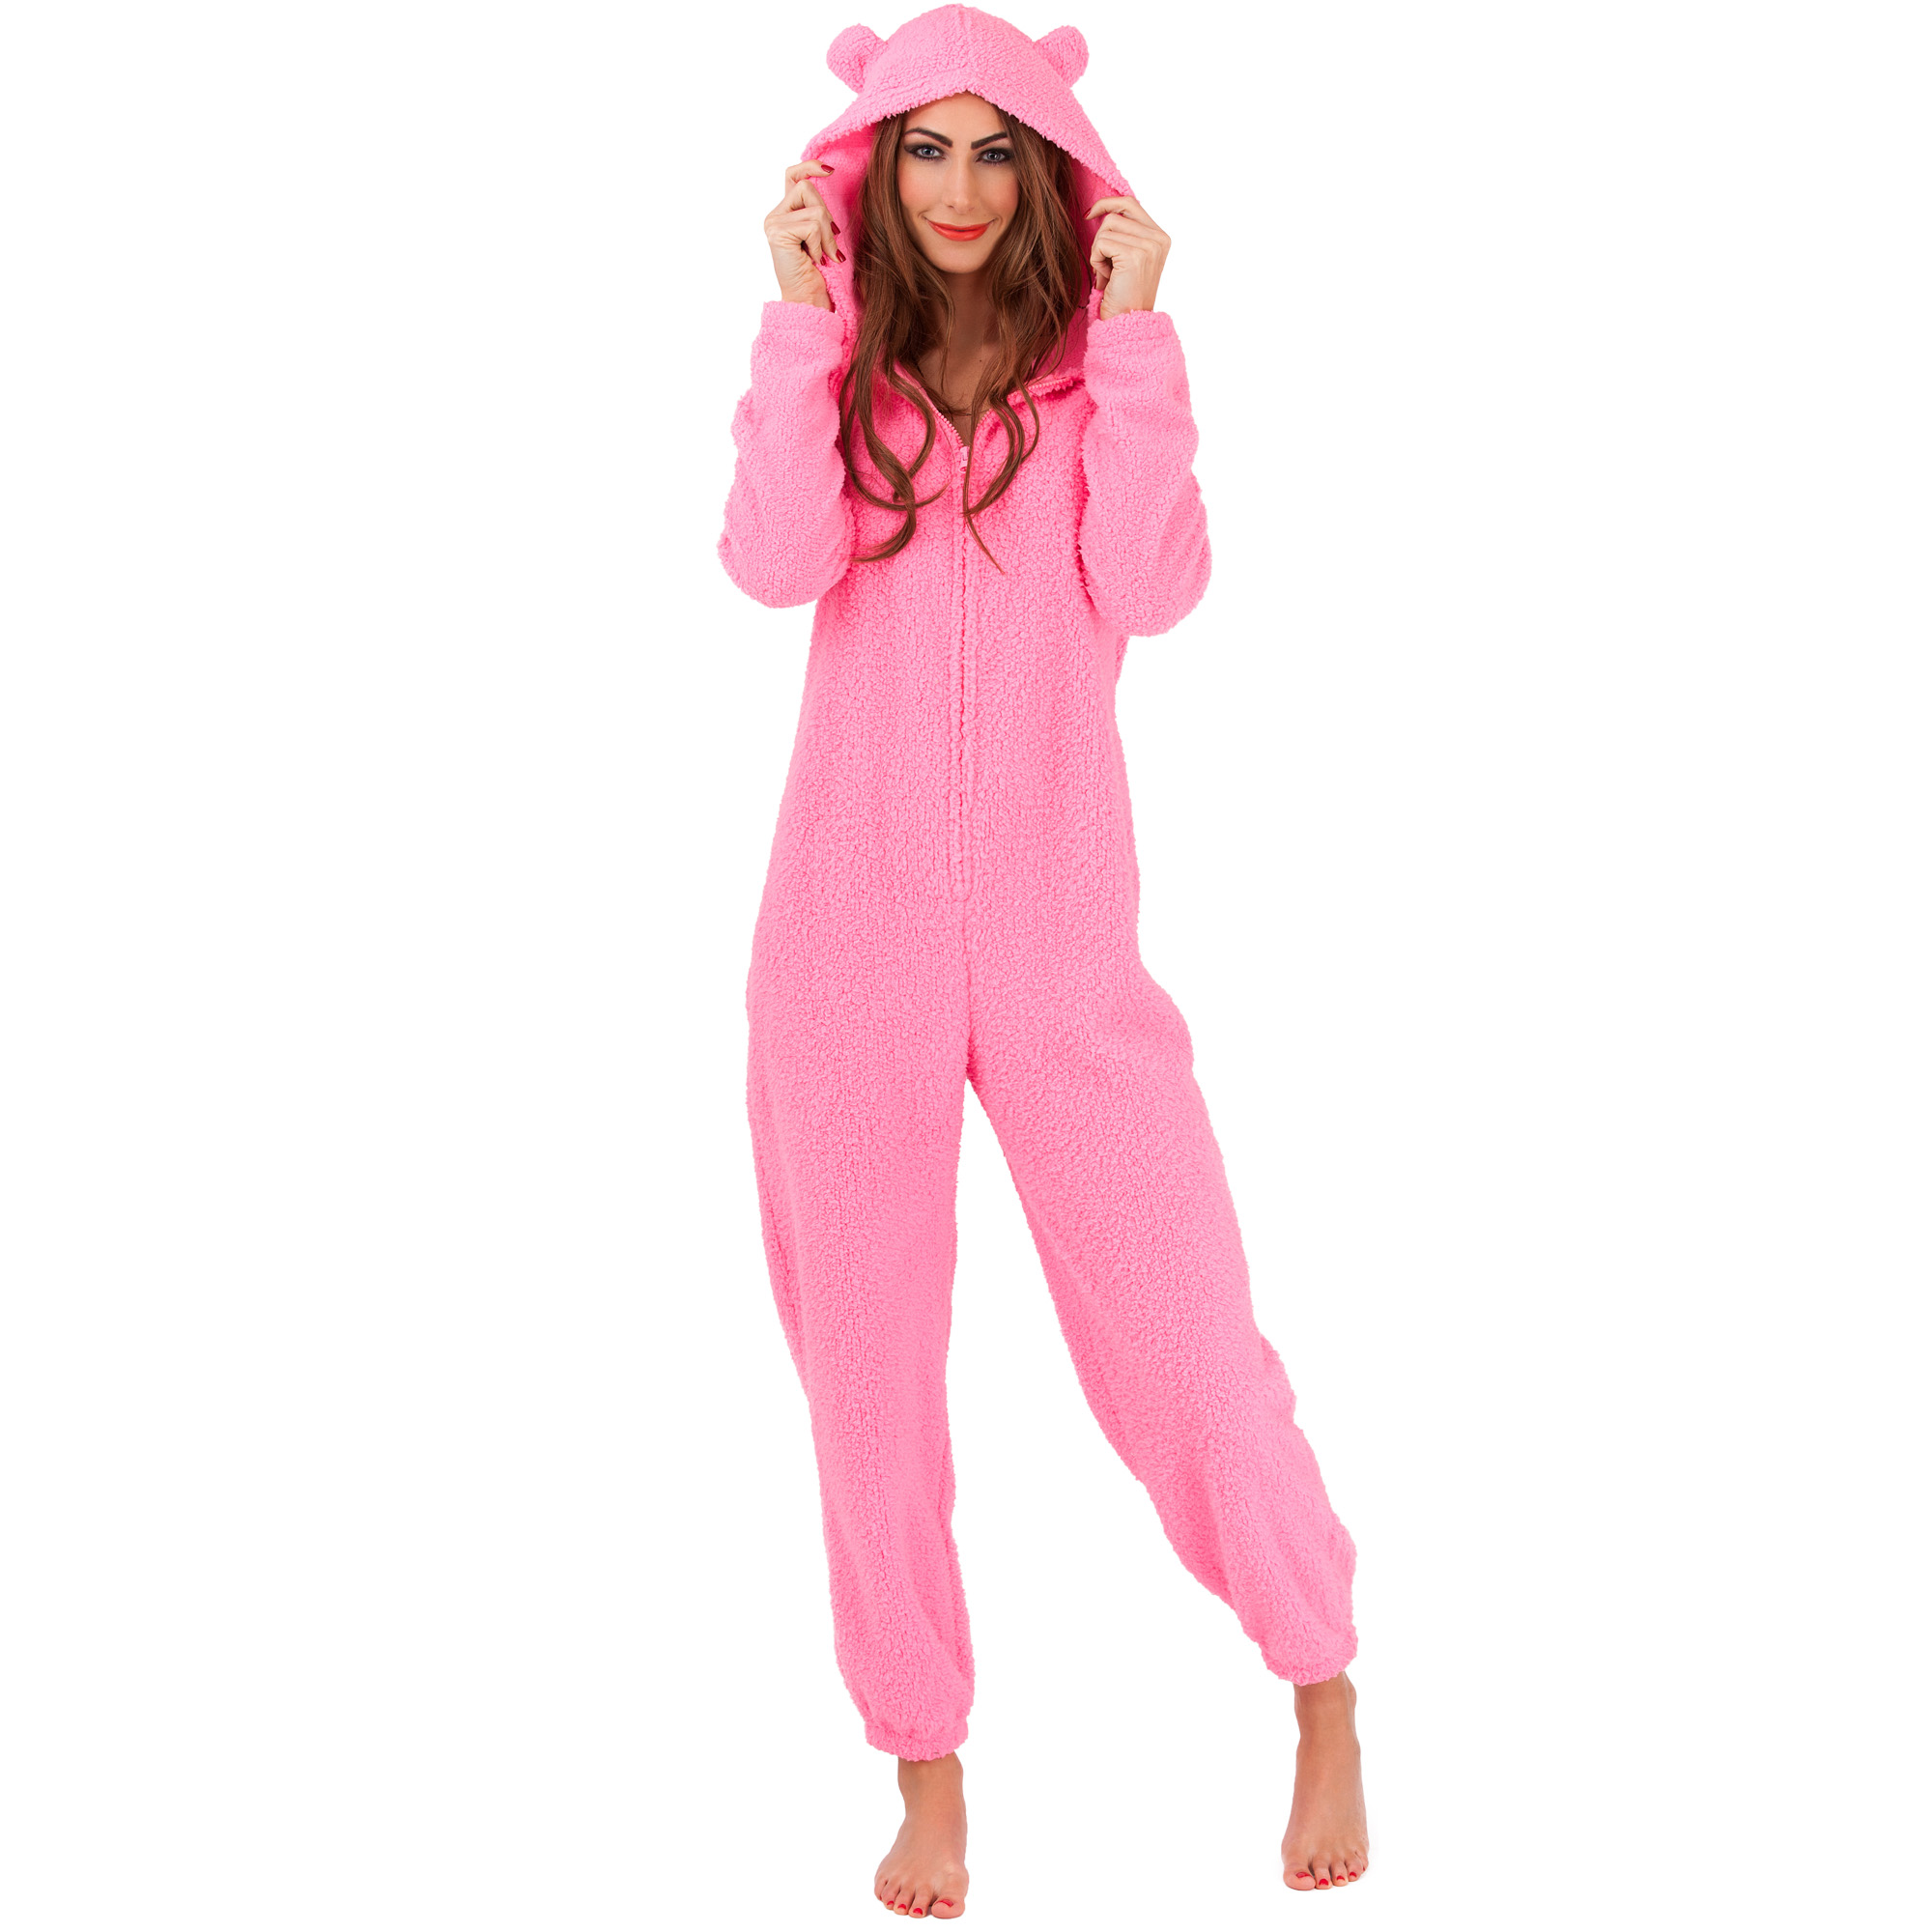 damen jumpsuit overall strampler pyjama einteiler onesie loungewear jogging neu ebay. Black Bedroom Furniture Sets. Home Design Ideas